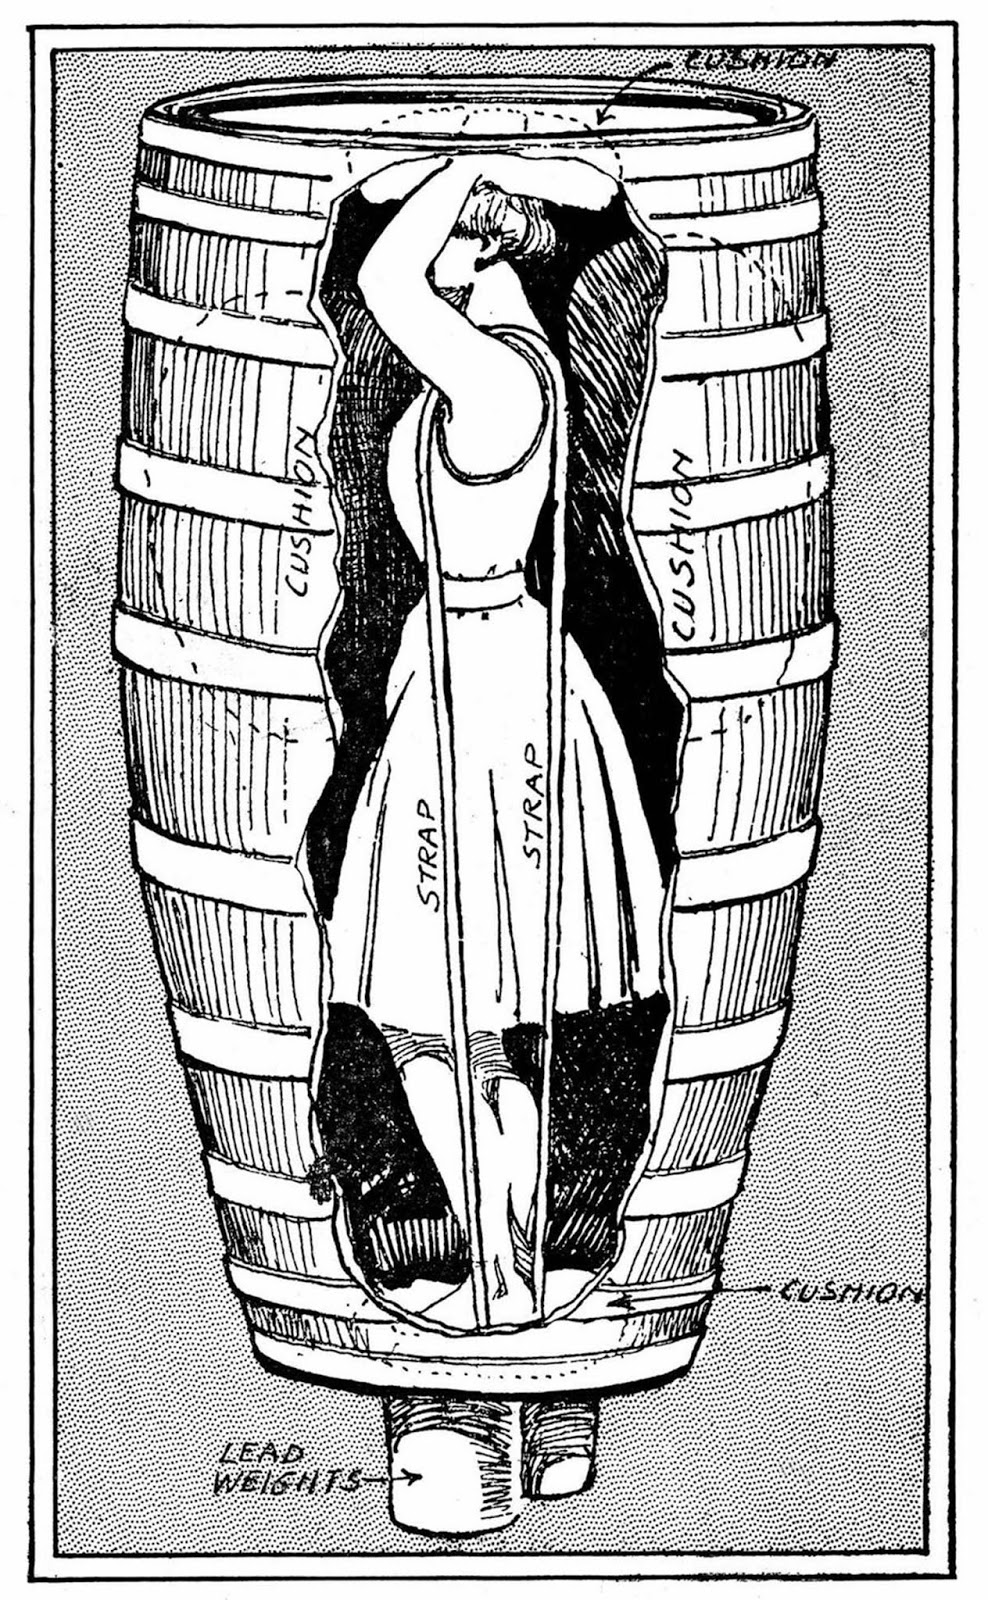 Anne Edson Taylor's barrel design. 1901.